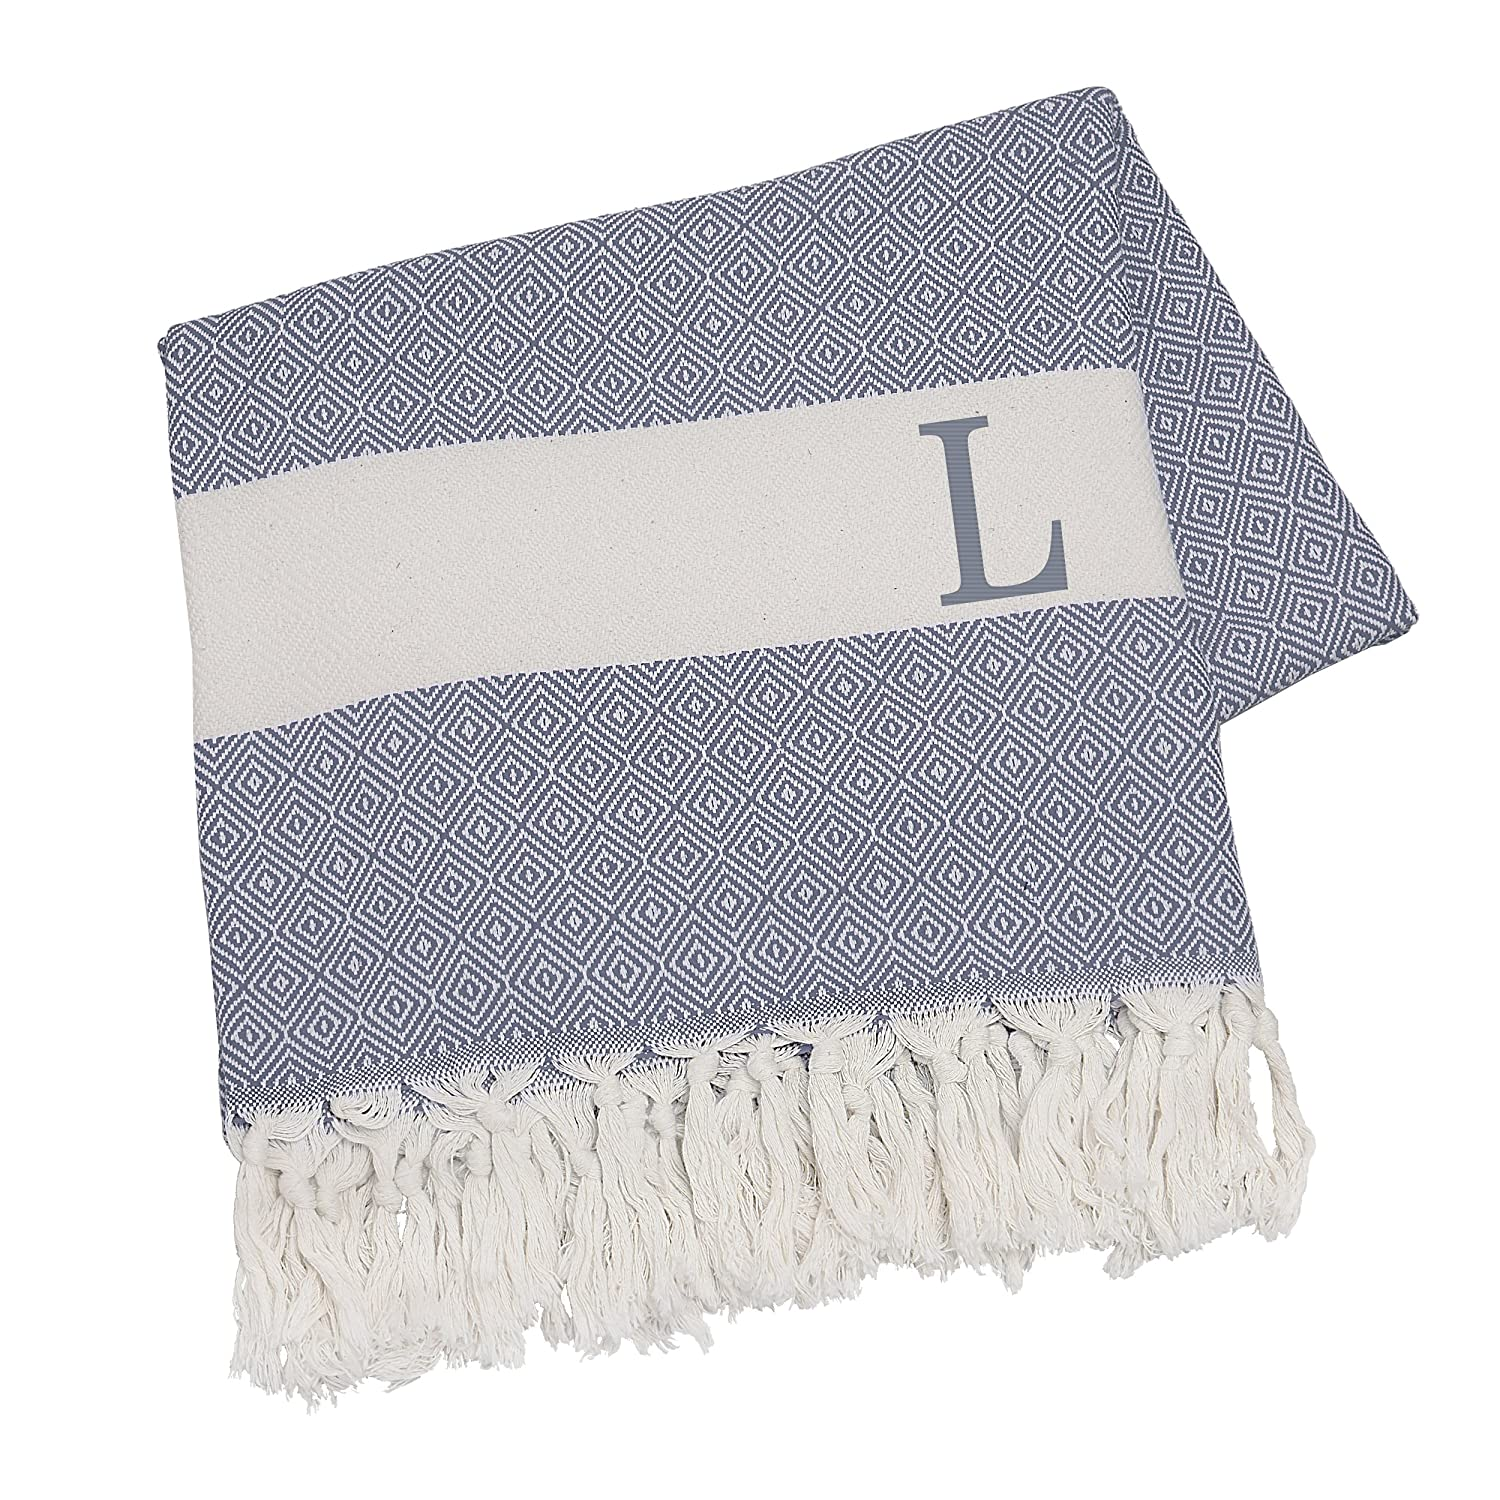 Beige Cathy/'s Concepts 1420BE-B Cathys Concepts Personalized Turkish Throw Letter B